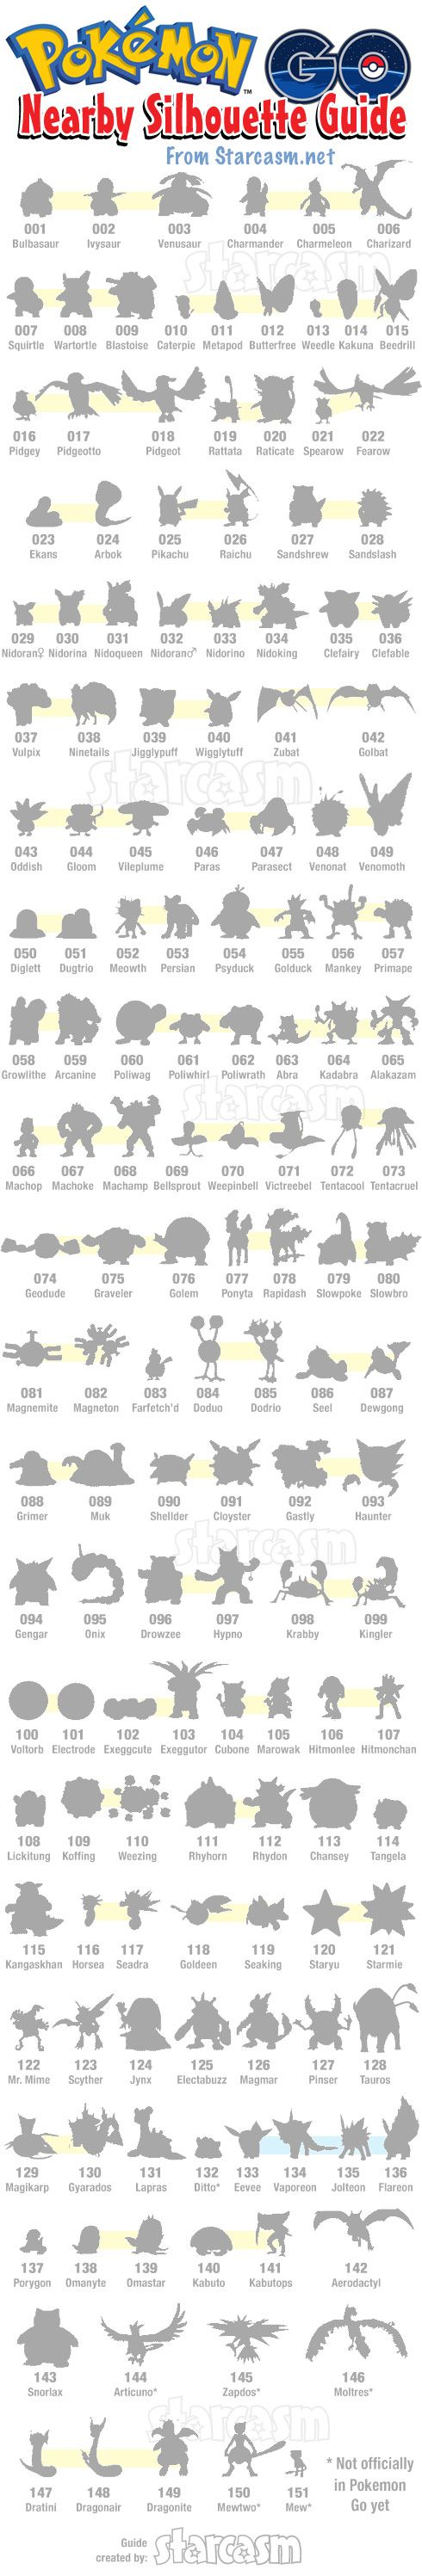 Complete Pokemon Go silhouettes outlines nearby guide